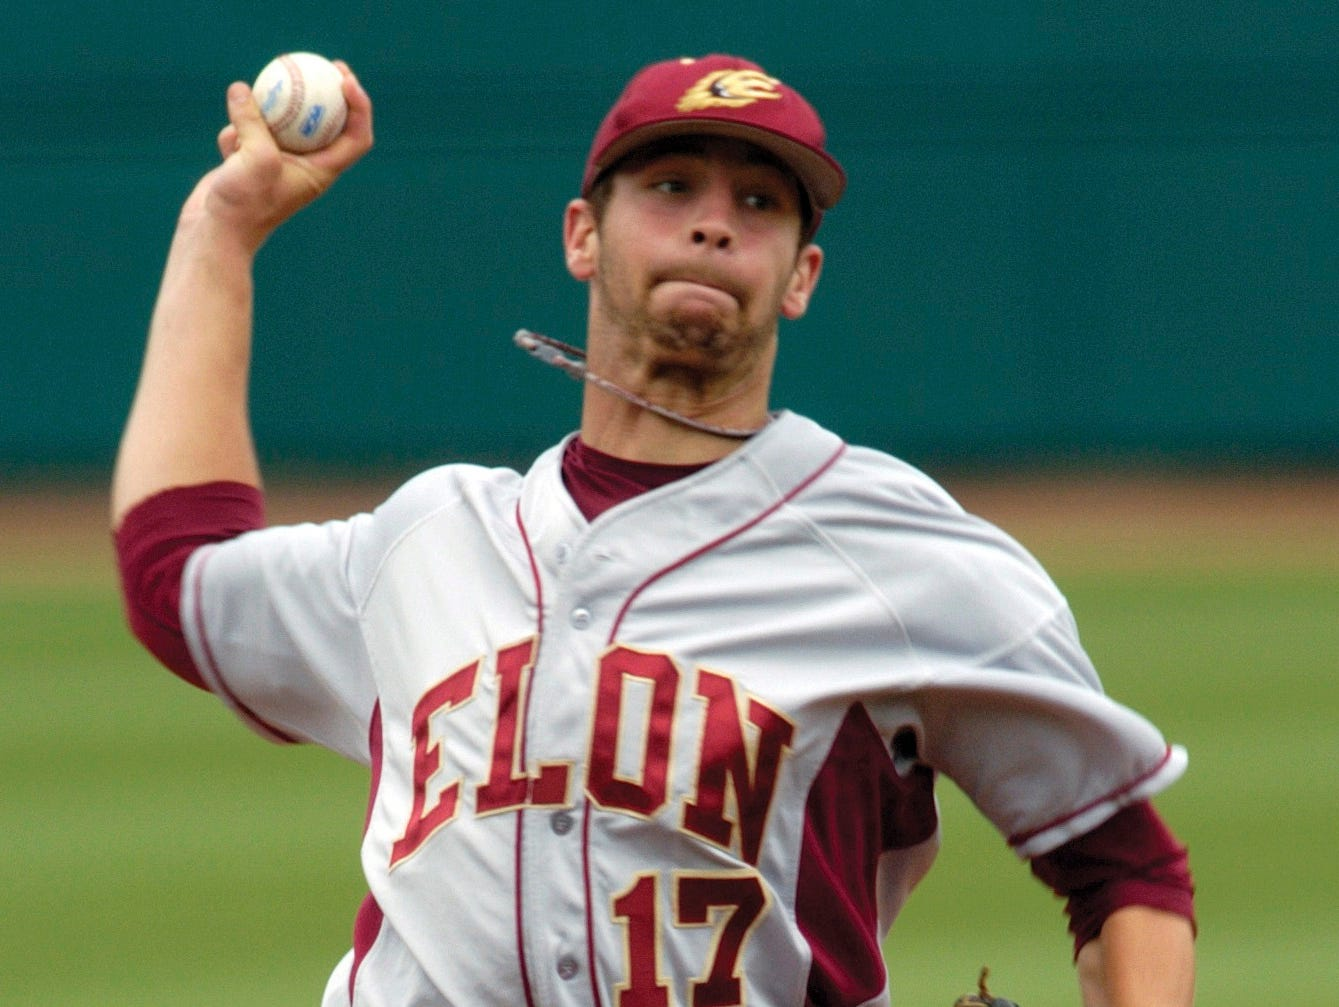 Owen alum Steven Hensley pitched in college for Elon.